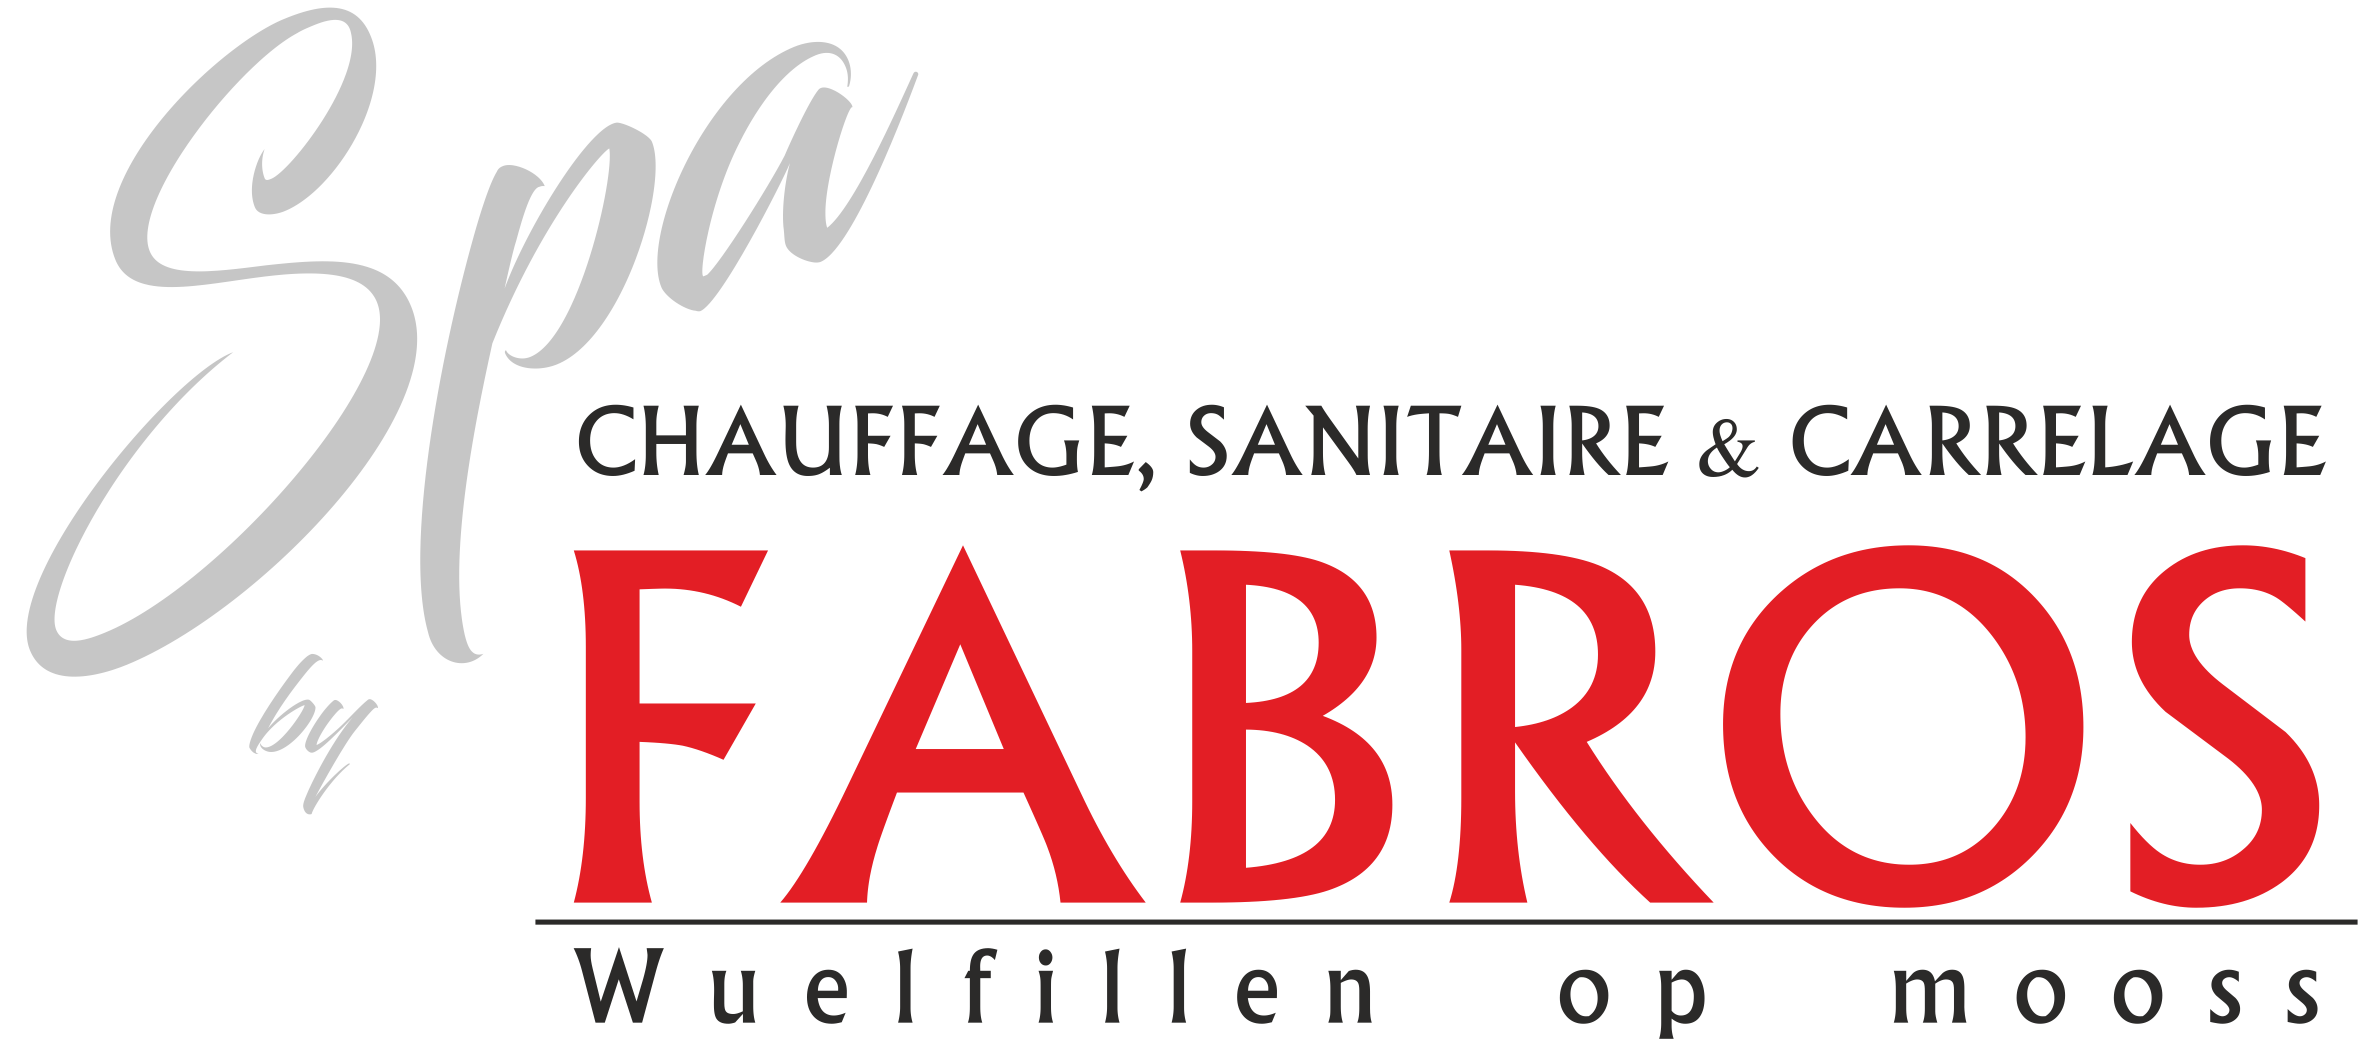 Solvis Fachpartner Fabros in Luxemburg